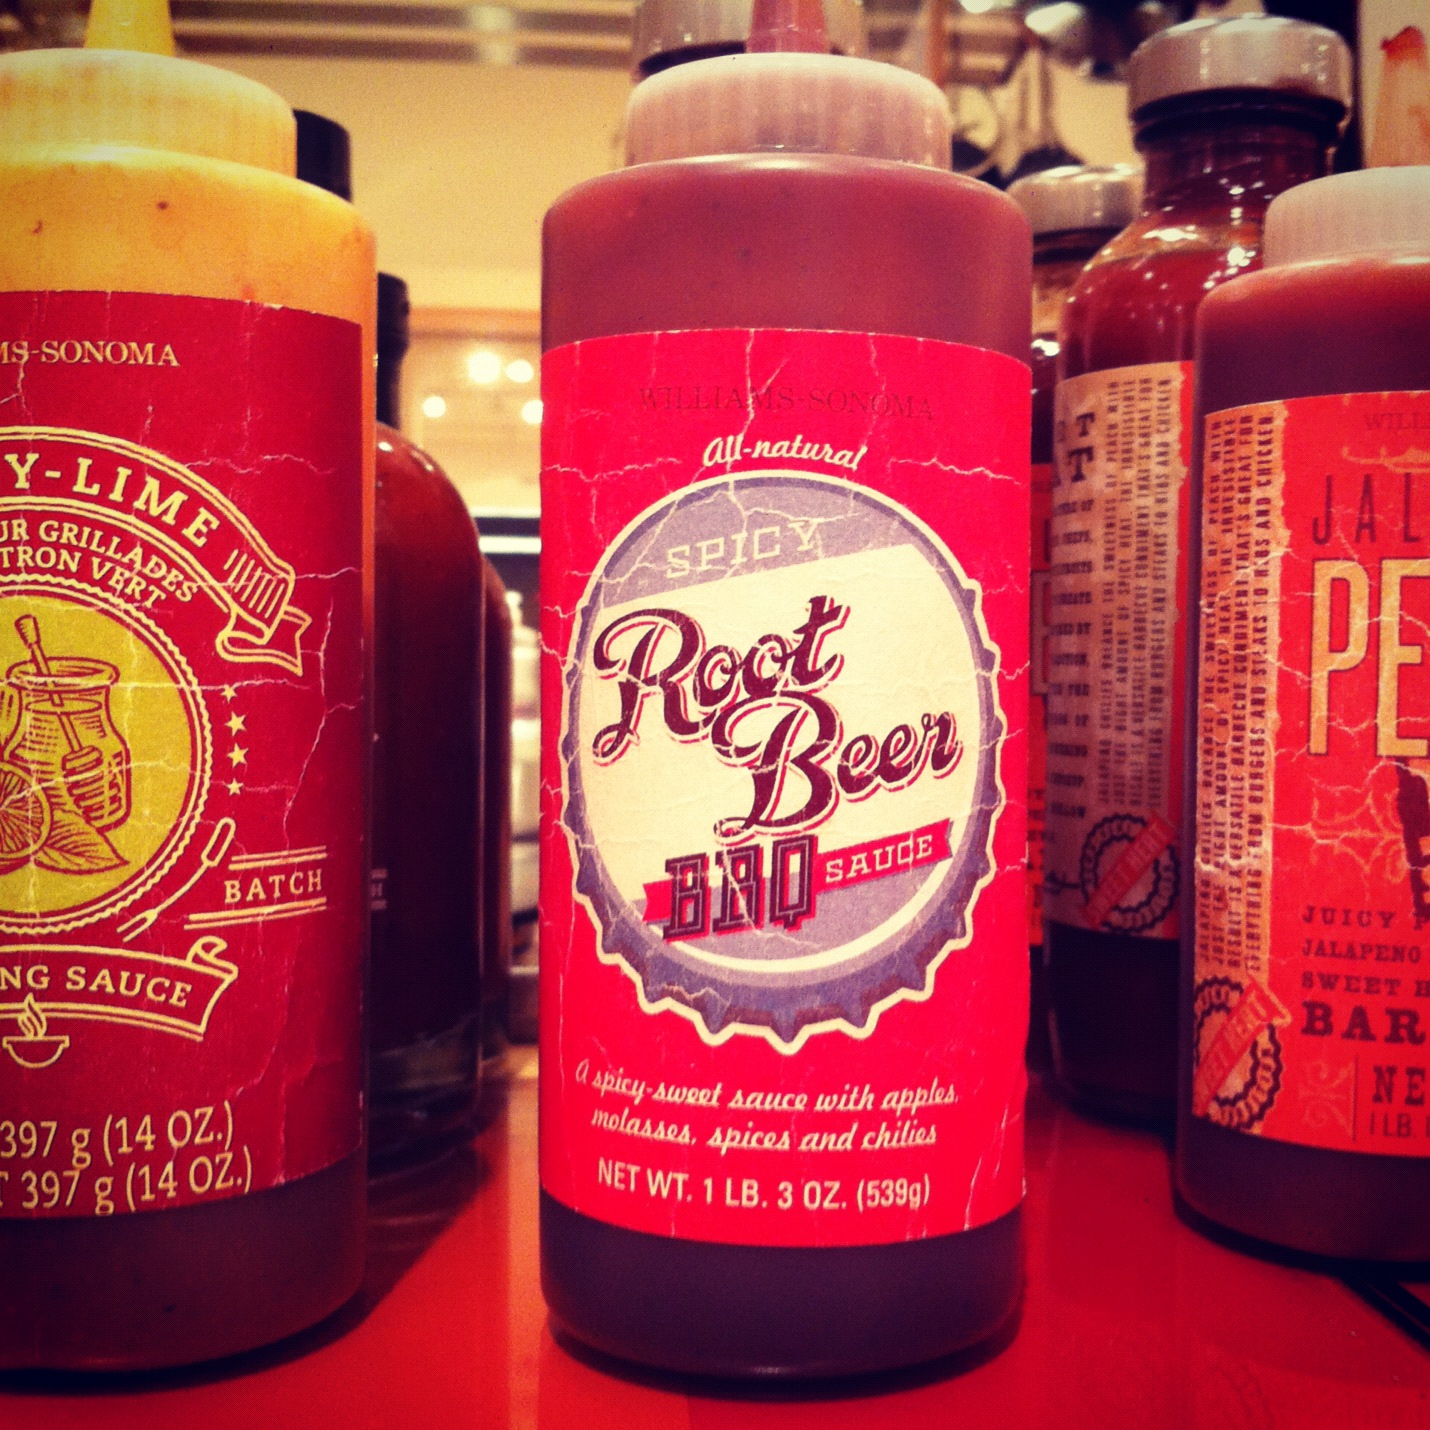 Root Beer BBQ Sauce from Williams-Sonoma, just picked up a bottle to try it out!